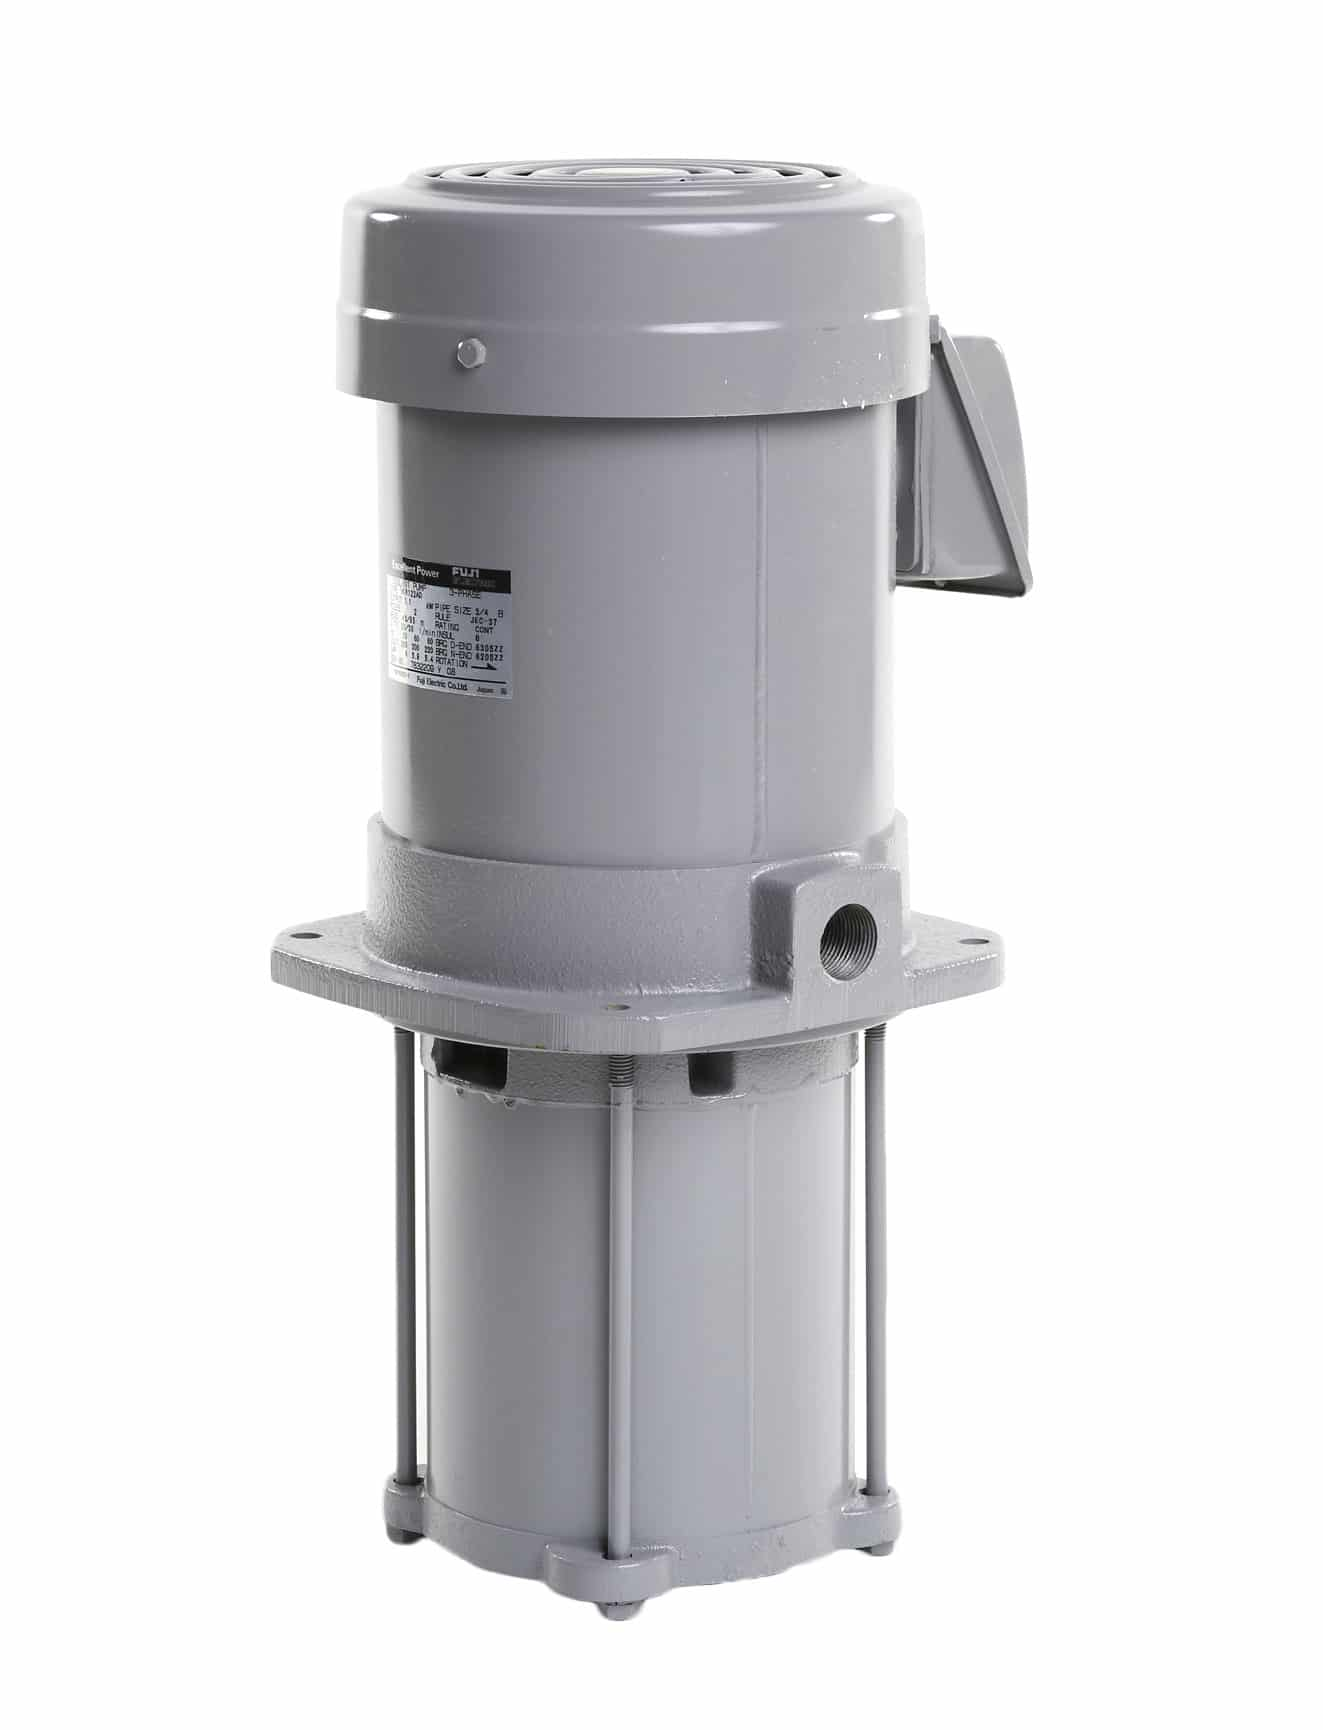 VKR – Immersion Type Pumps